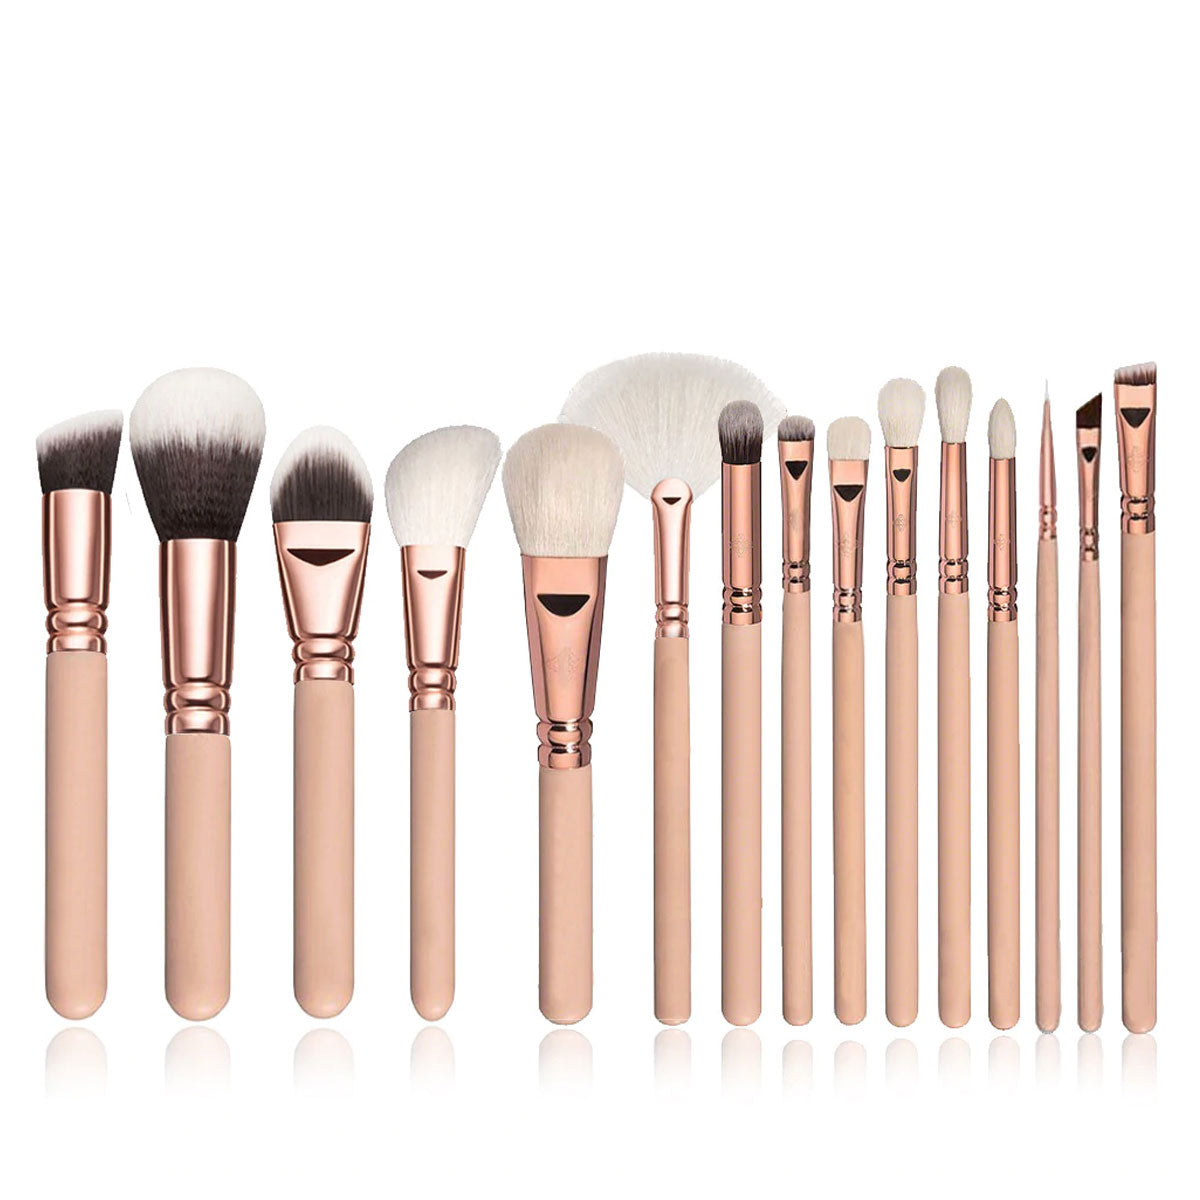 Ultra-Soft Pink Makeup Brushes Set with Wood Handles